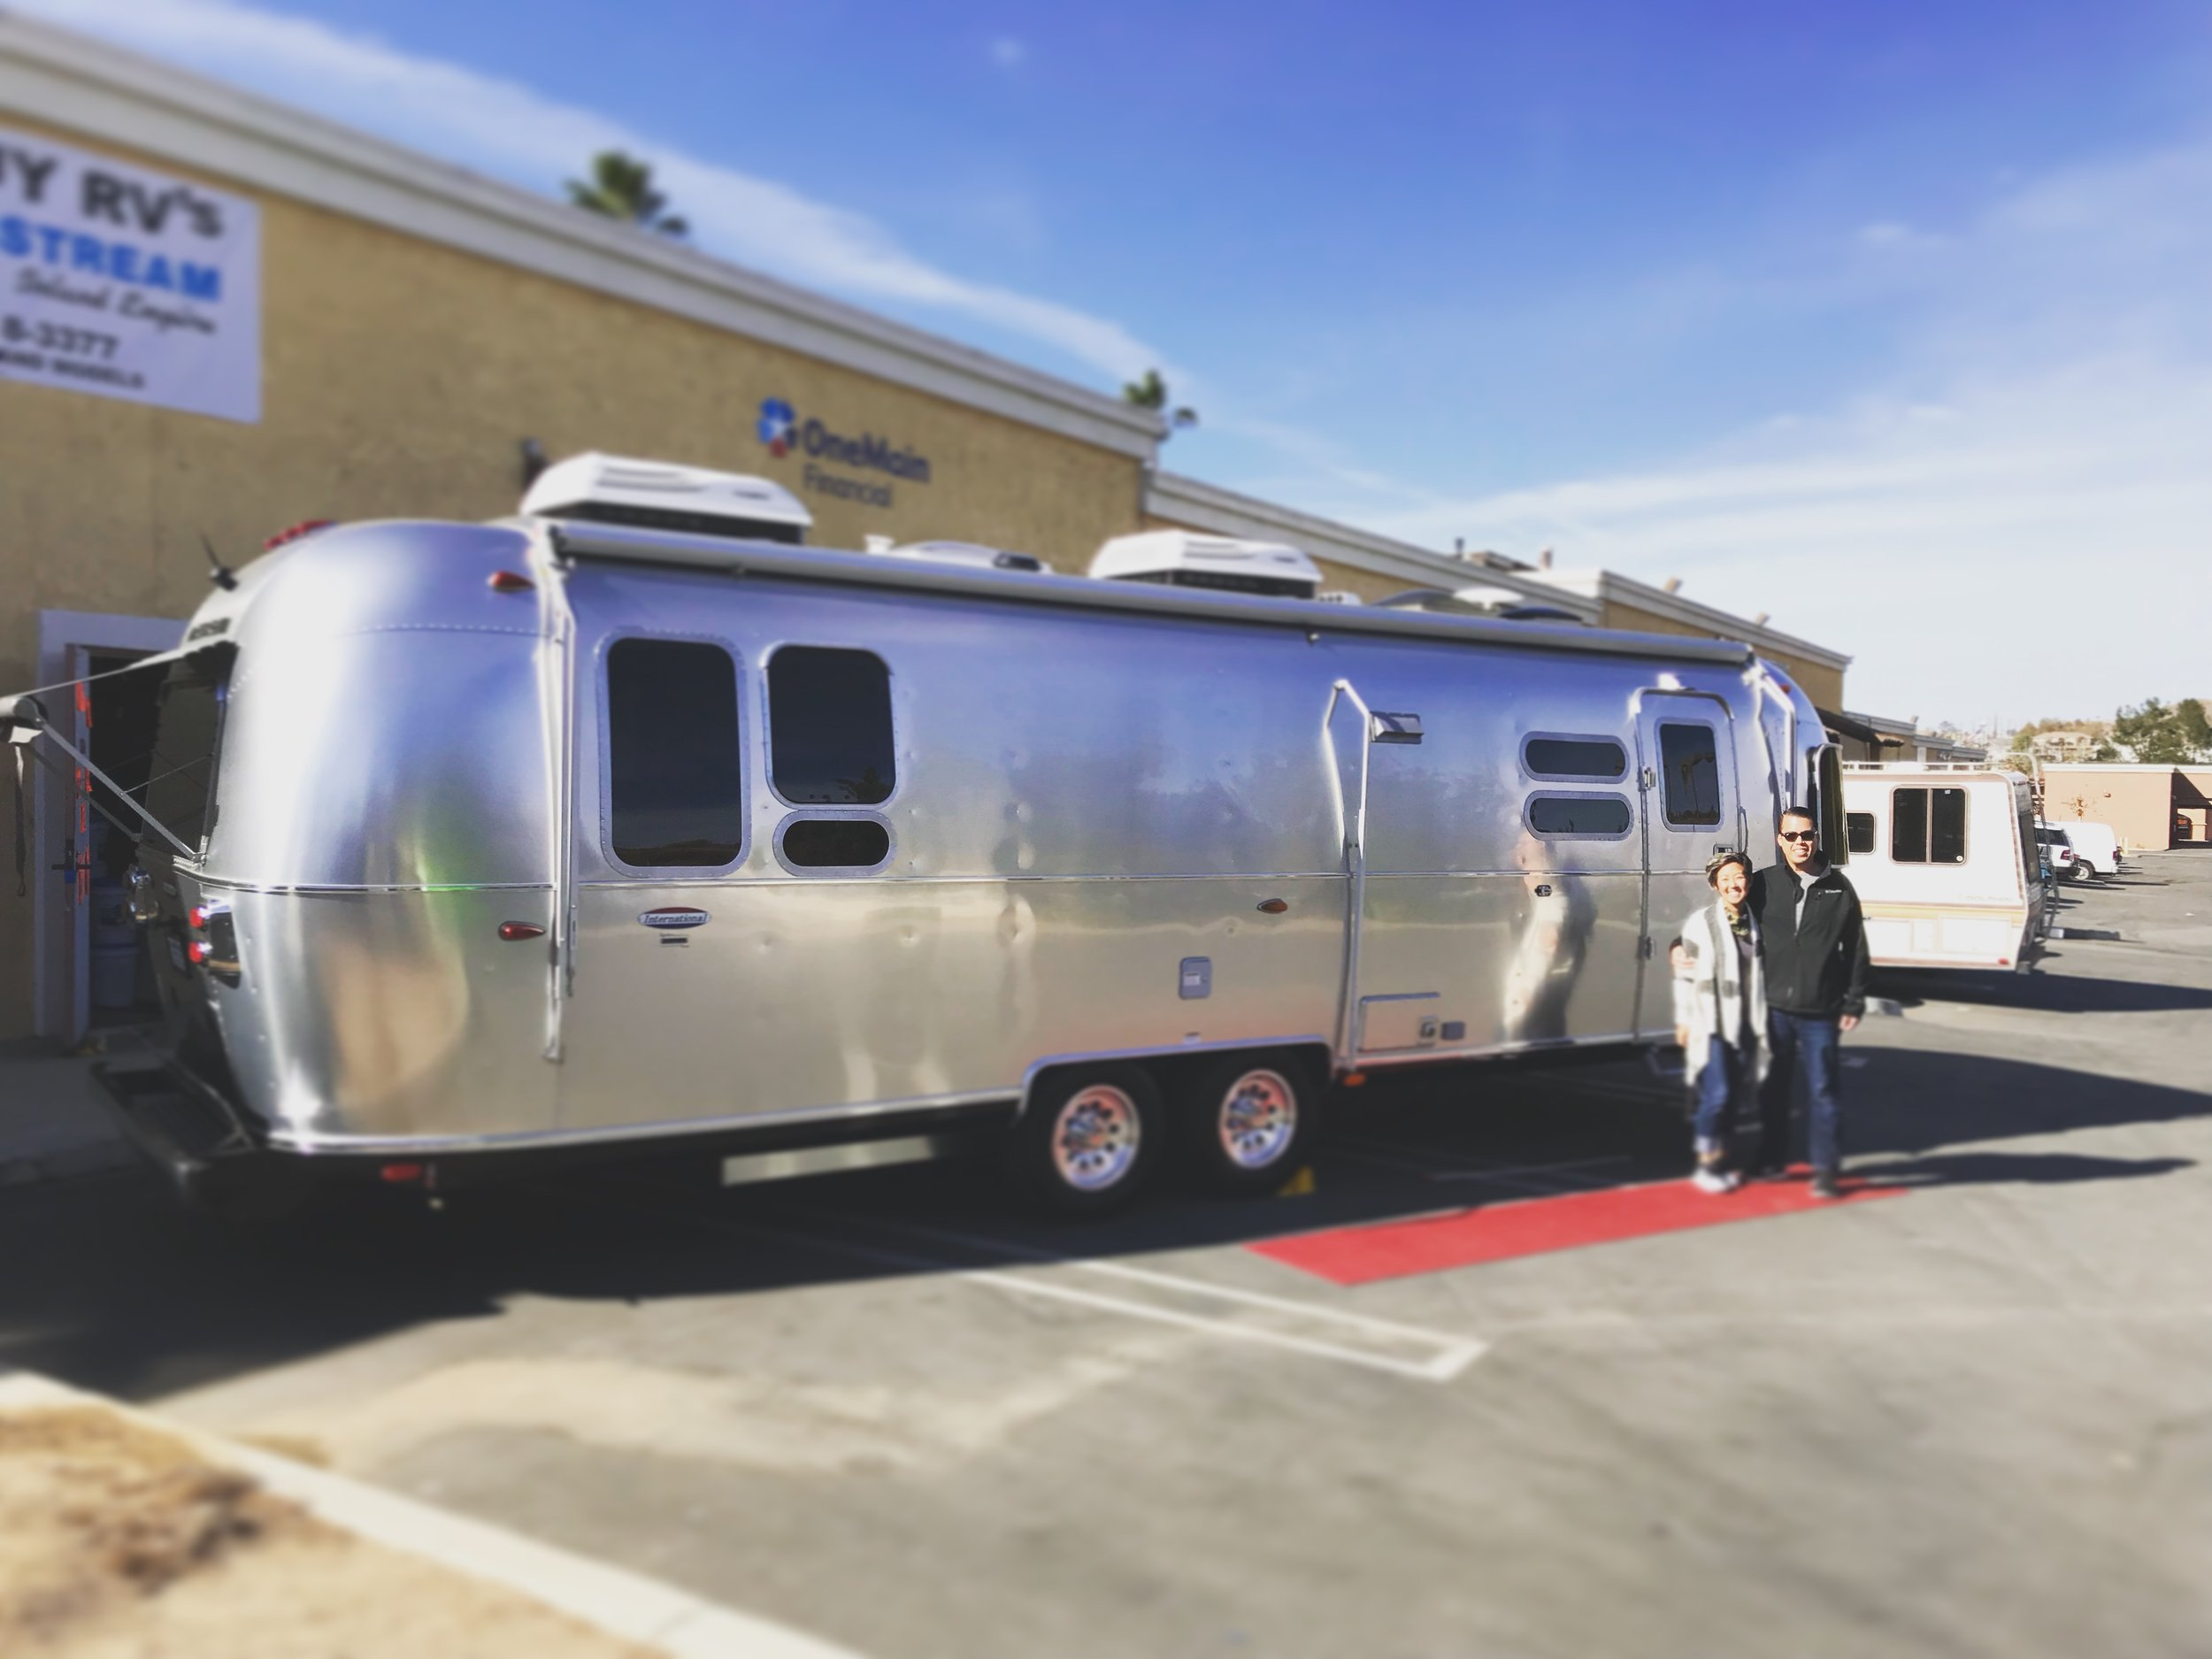 December 9, 2017 - At the Inland Empire Airstream dealership for our walk-through!